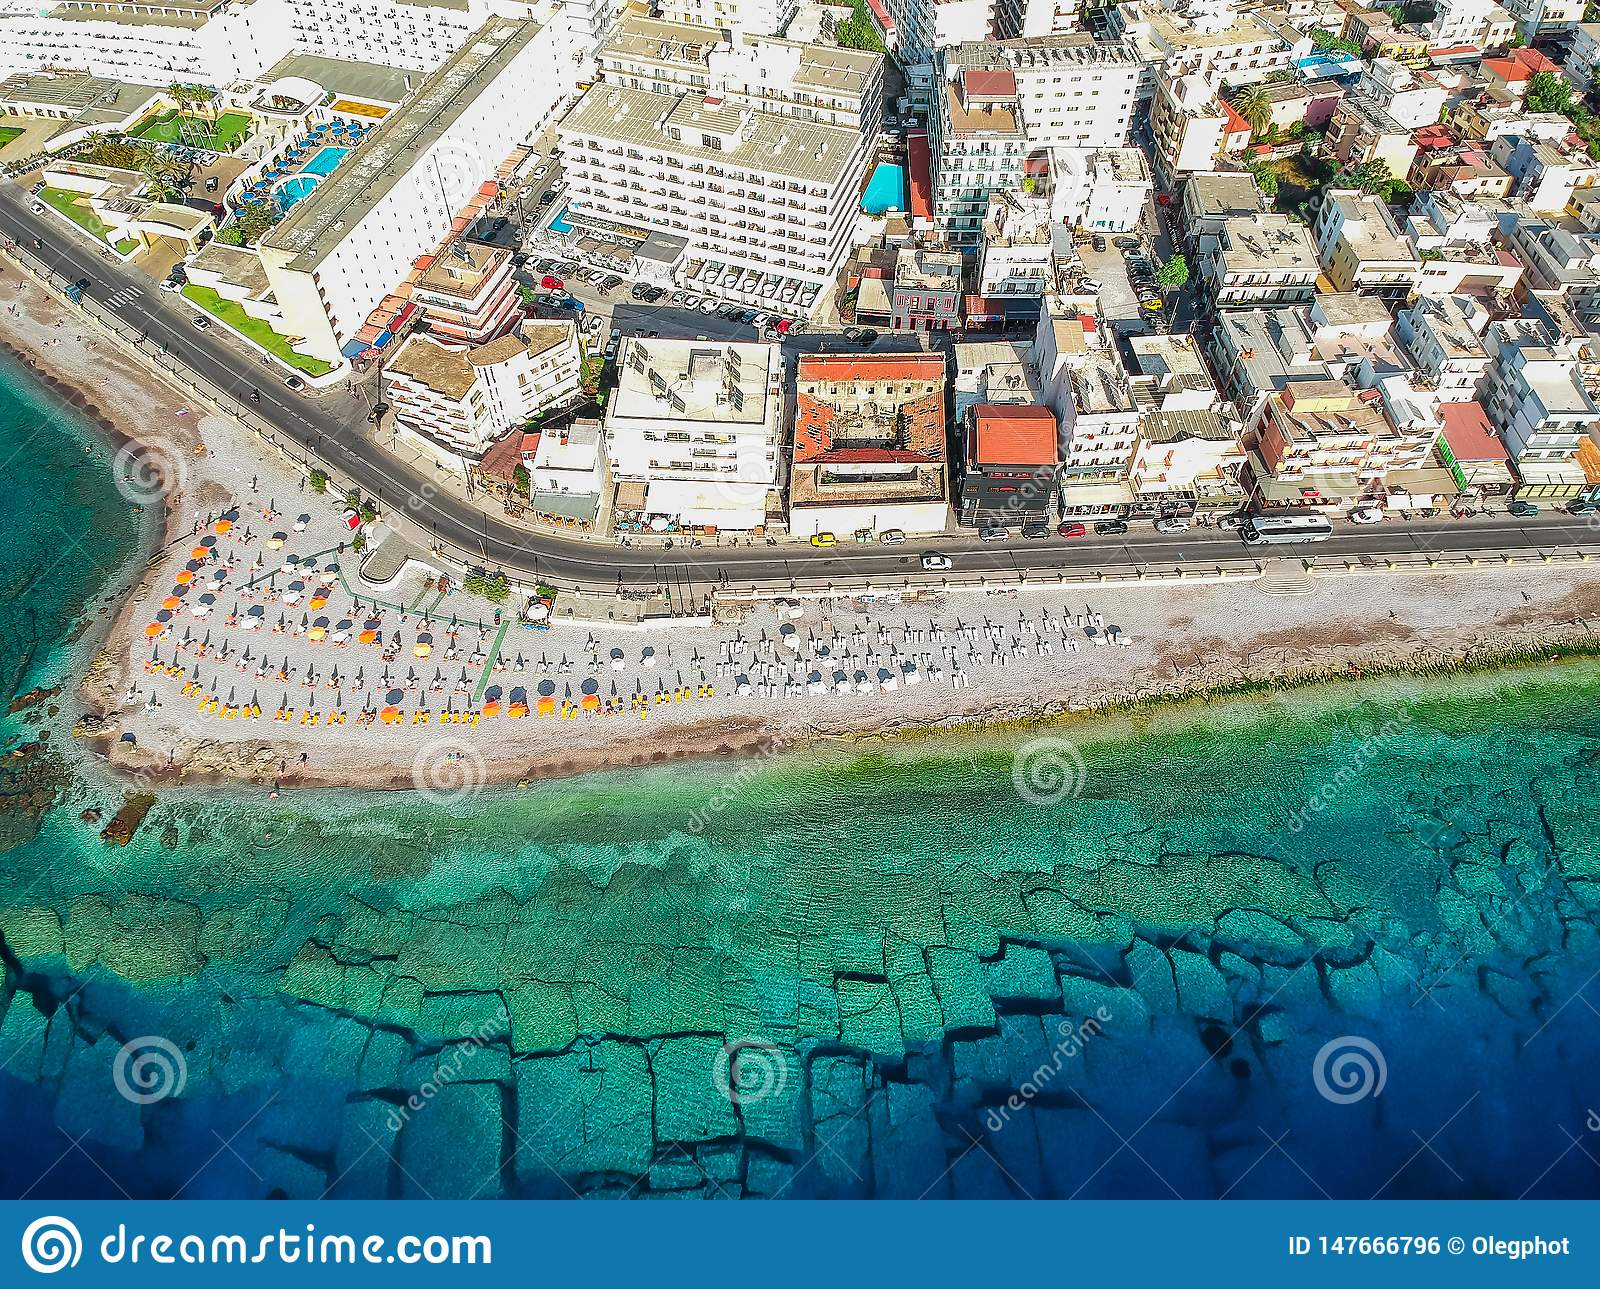 Aerial birds eye view drone photo of Elli beach on Rhodes city island, Dodecanese, Greece. Panorama with nice sand, lagoon and